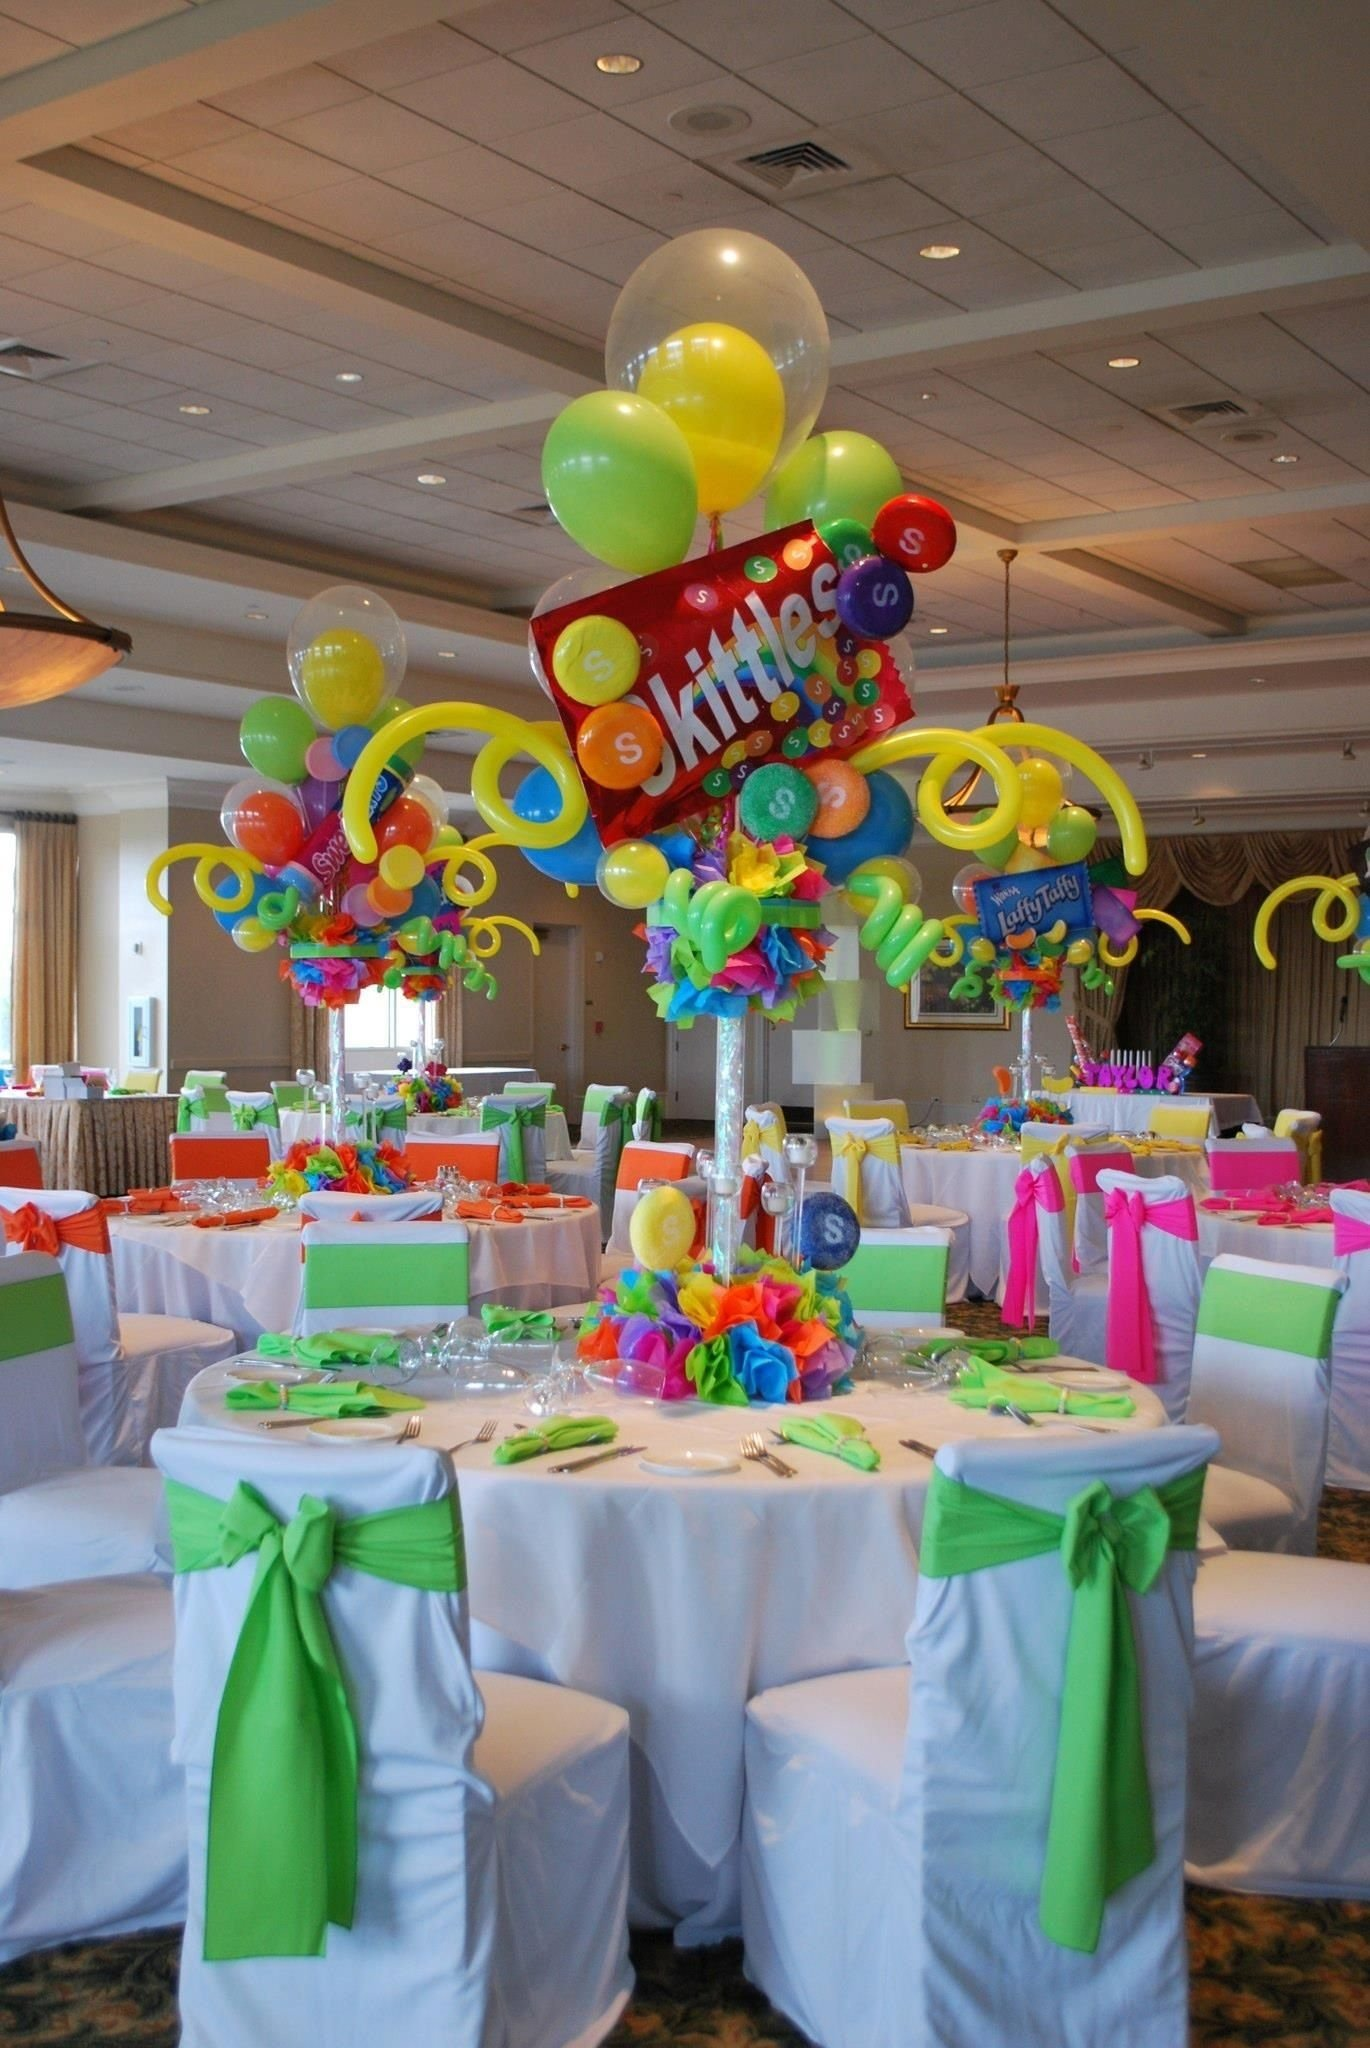 10 Famous Candy Themed Birthday Party Ideas candy themed bat mitzvah event decor adult centerpieces party 6 2020